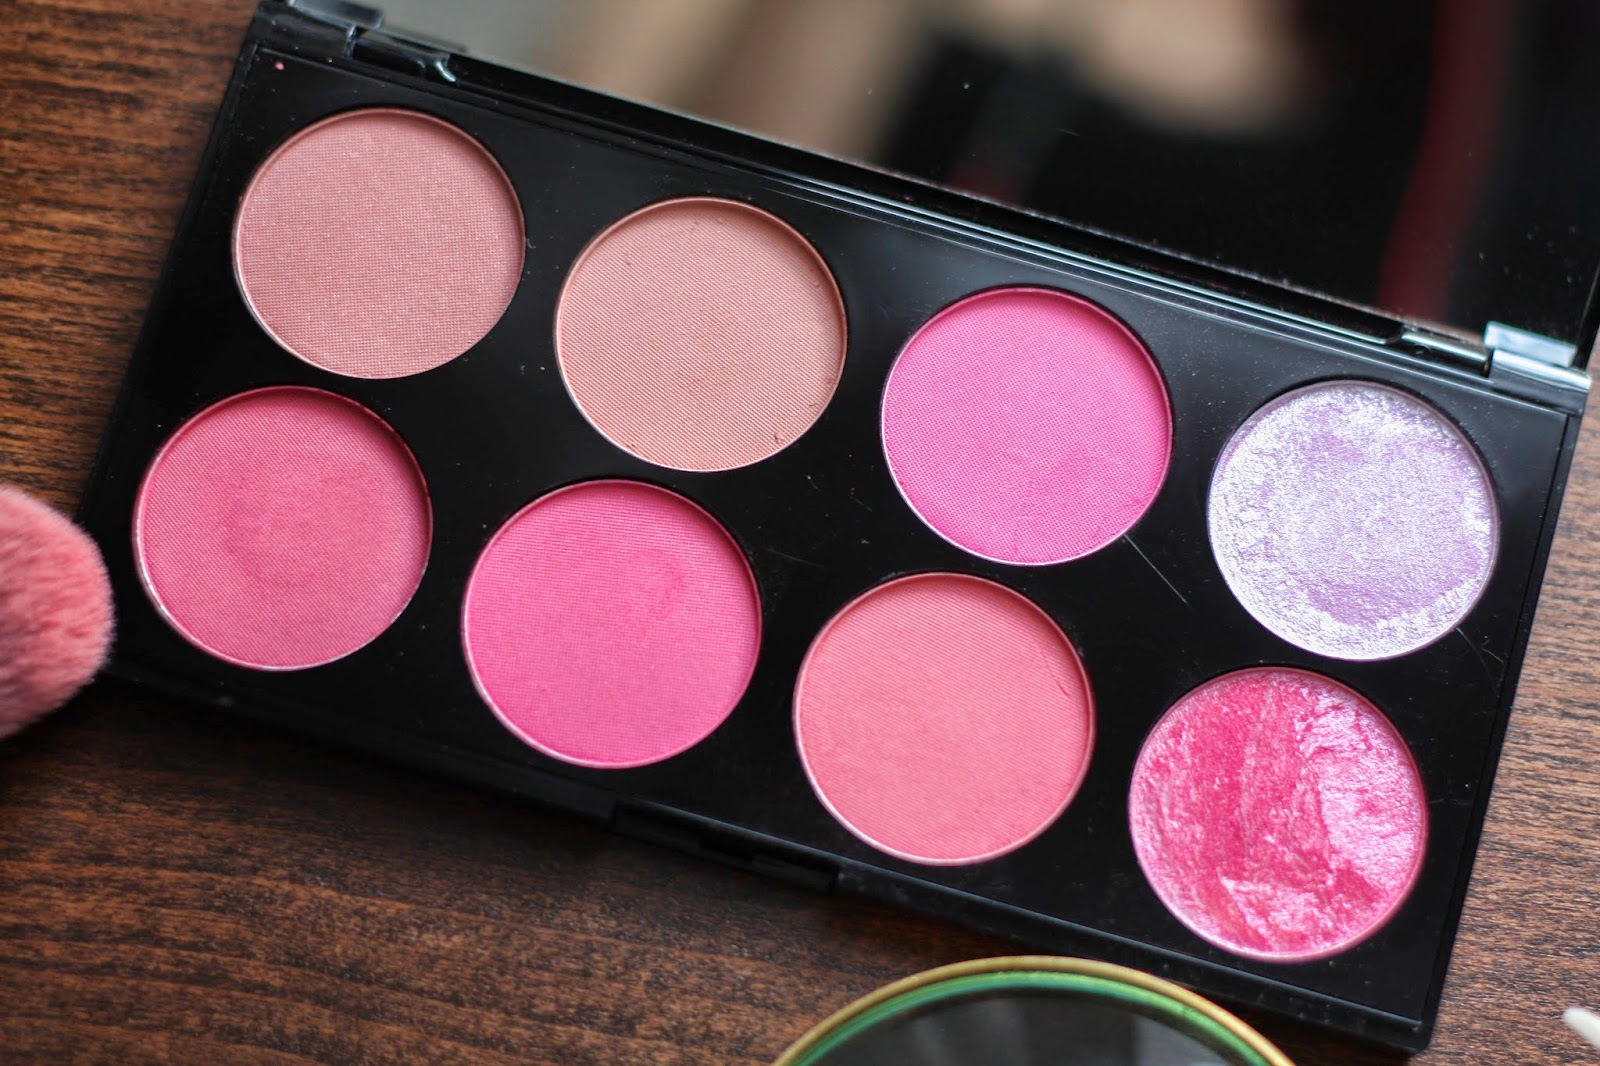 Makeup Revolution Sugar & Spice blush palette